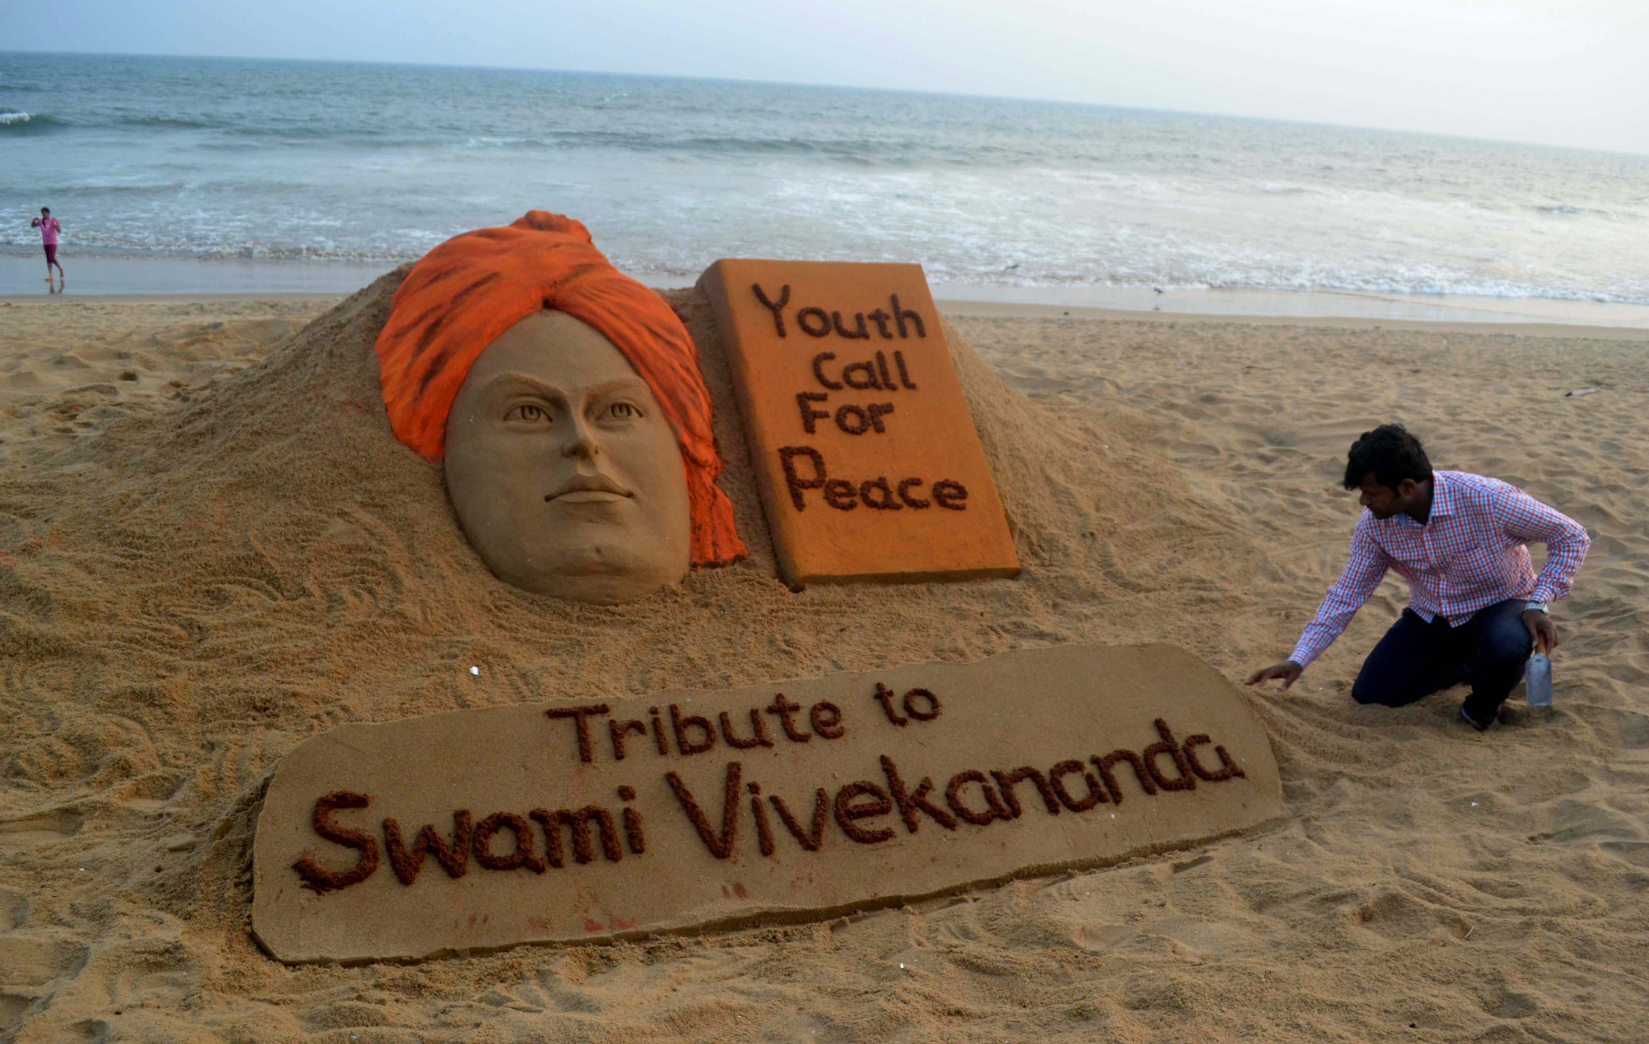 Sudarsan Pattnaik at the Swami Vivekananda Jayanti creating by sand at Puri, India. Source: Zuma/Global Look Press